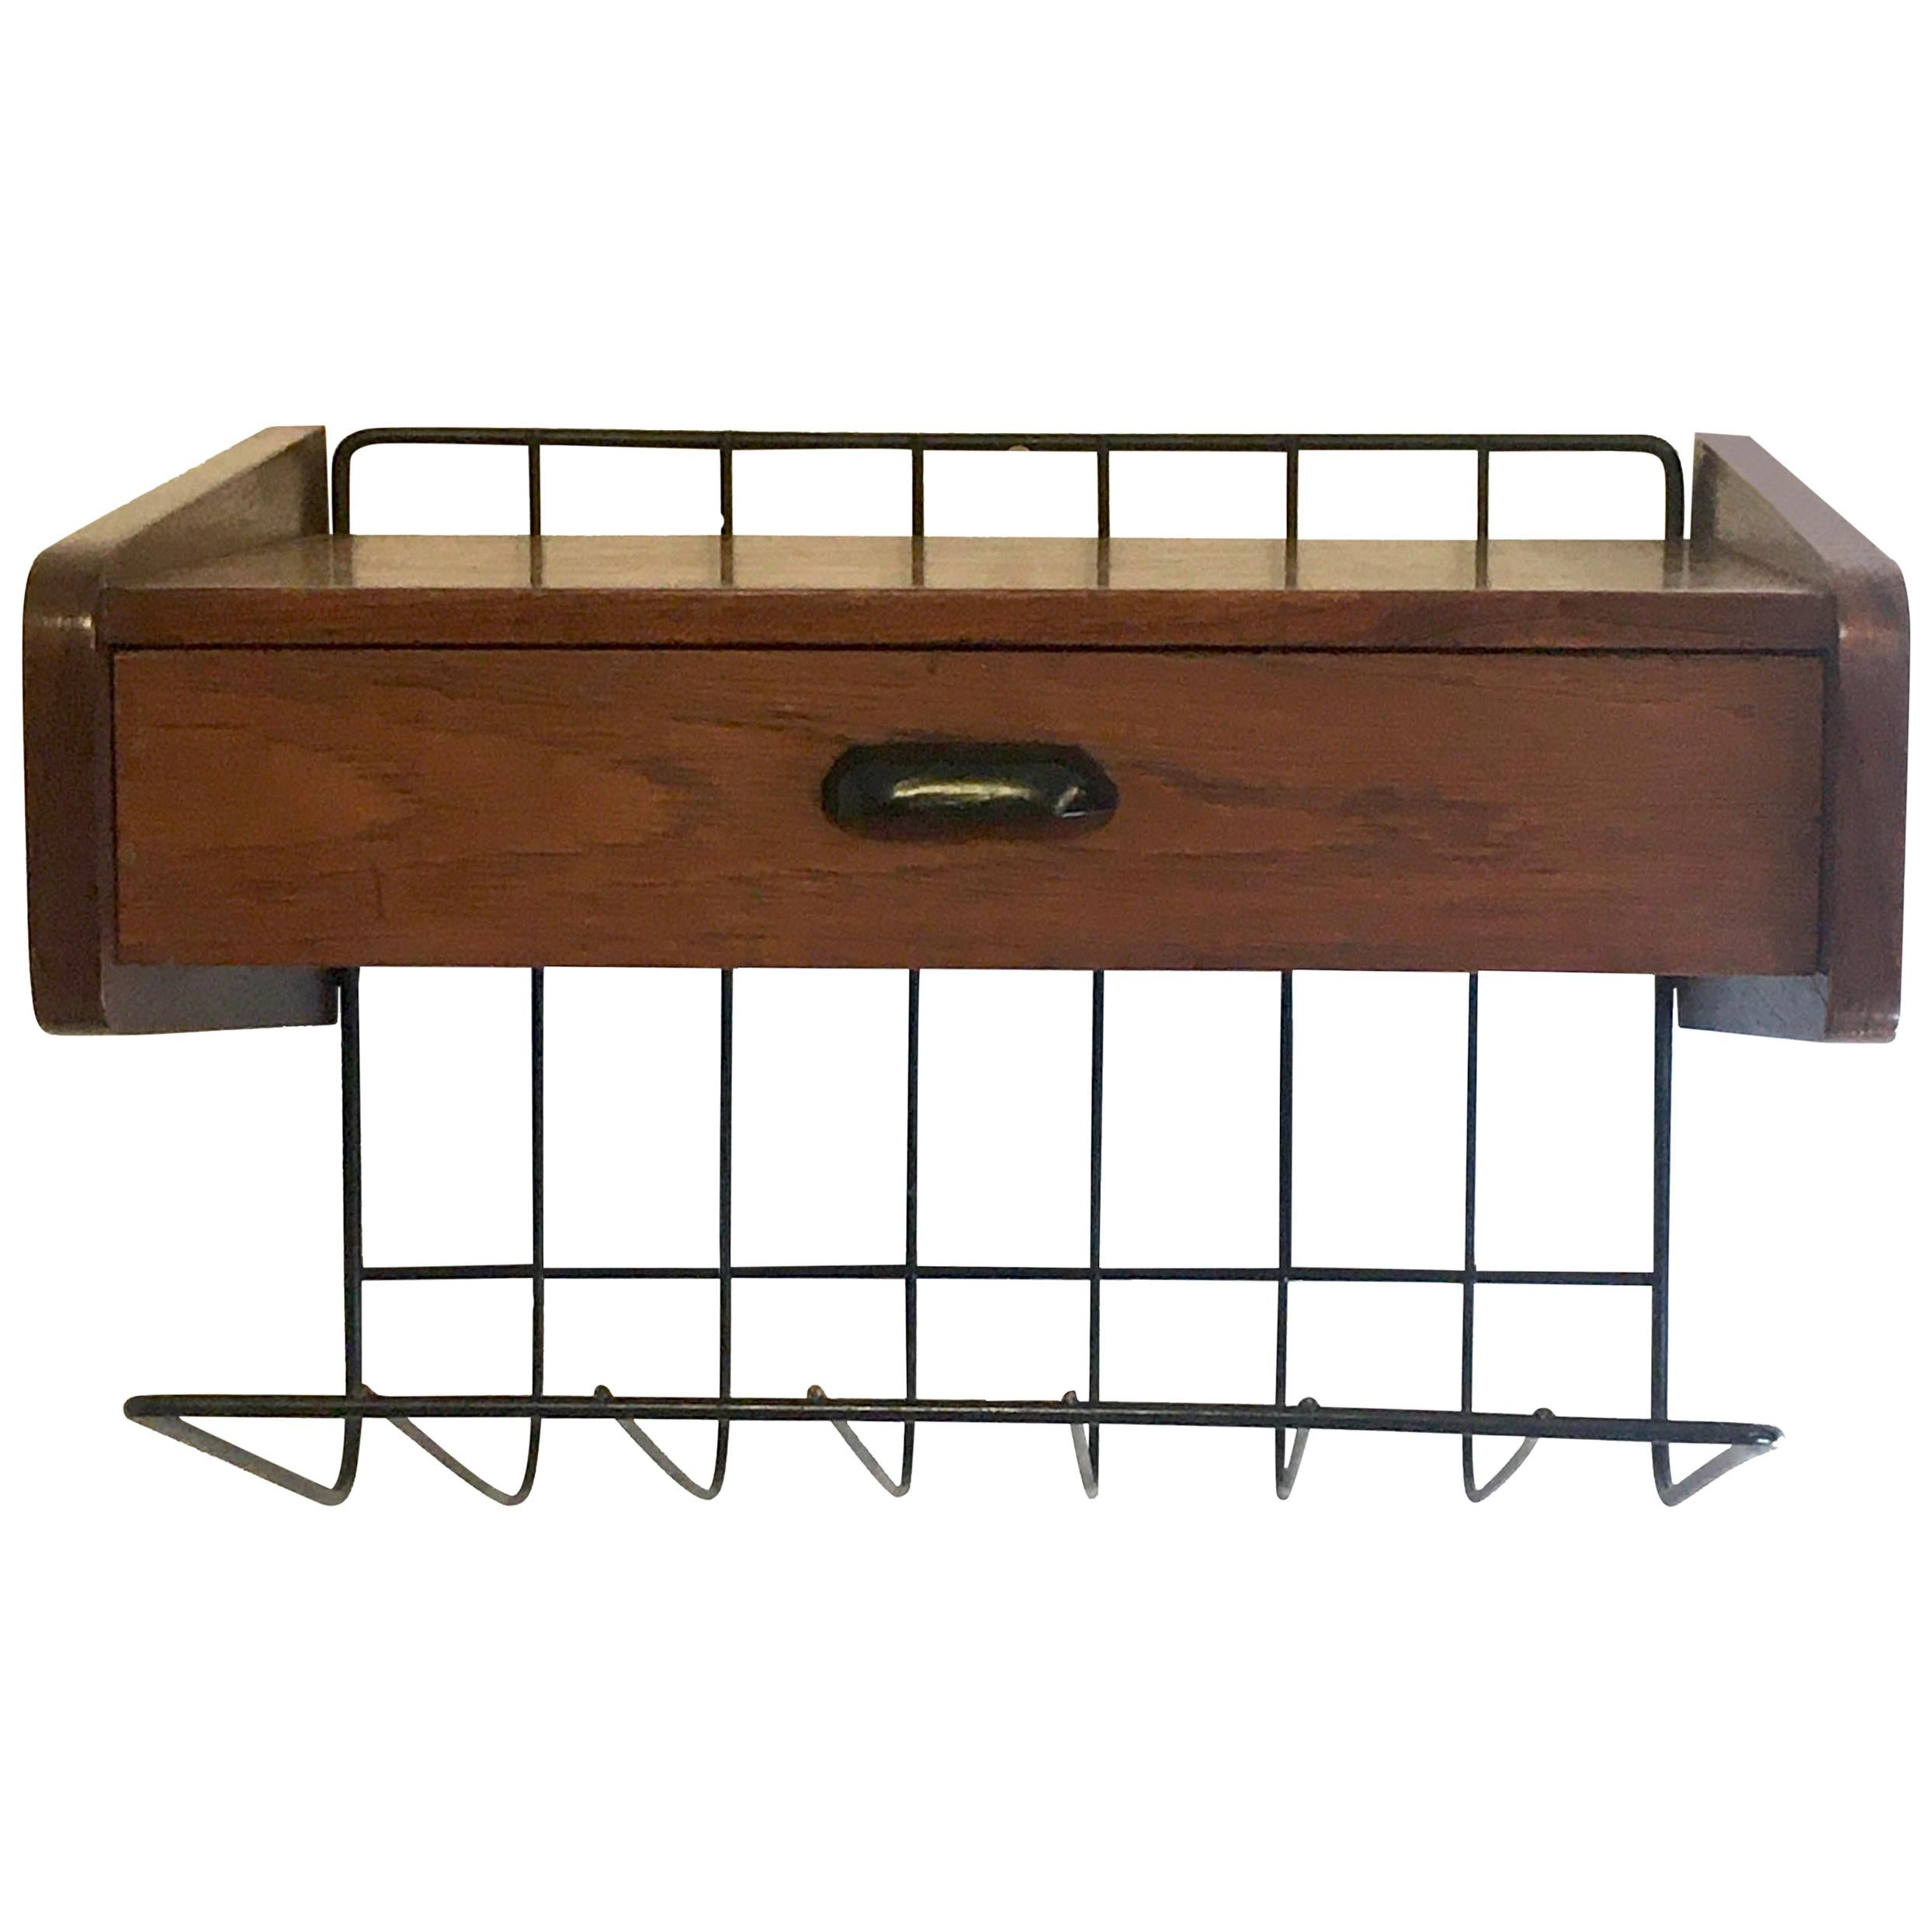 Pizzetti Roma Bedside Table in Walnut with Black Metal Magazine Rack